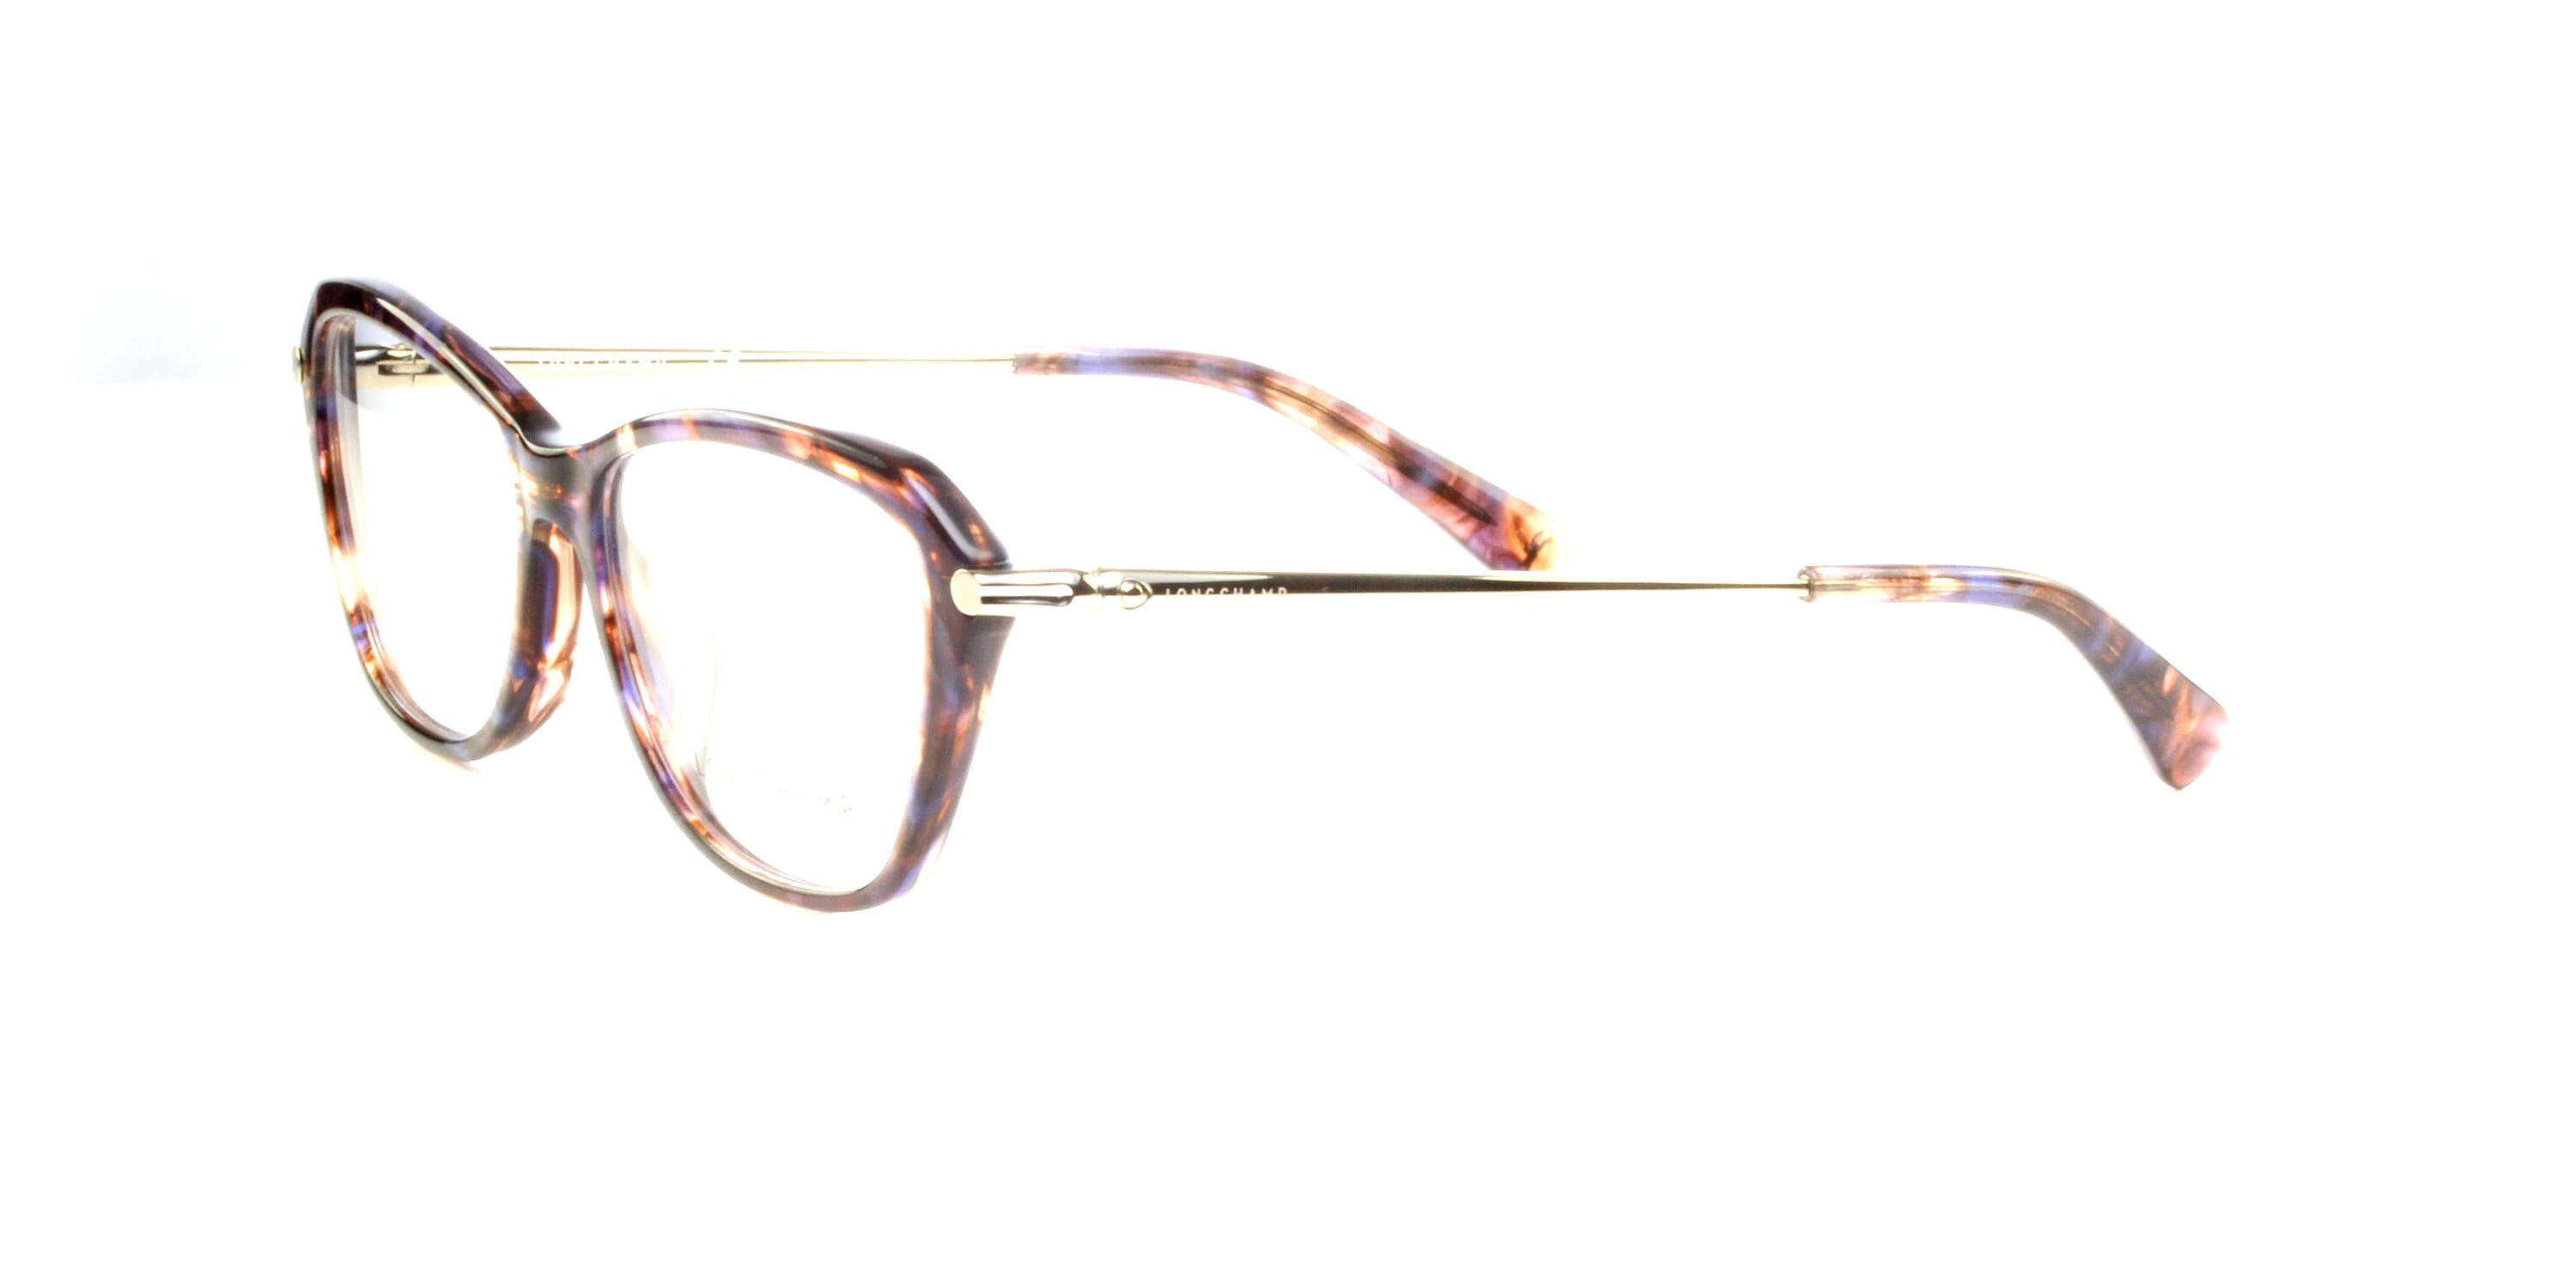 Gafas Graduadas SmartBuy Collection Courtney nocolorcode 652 GxqCUjs